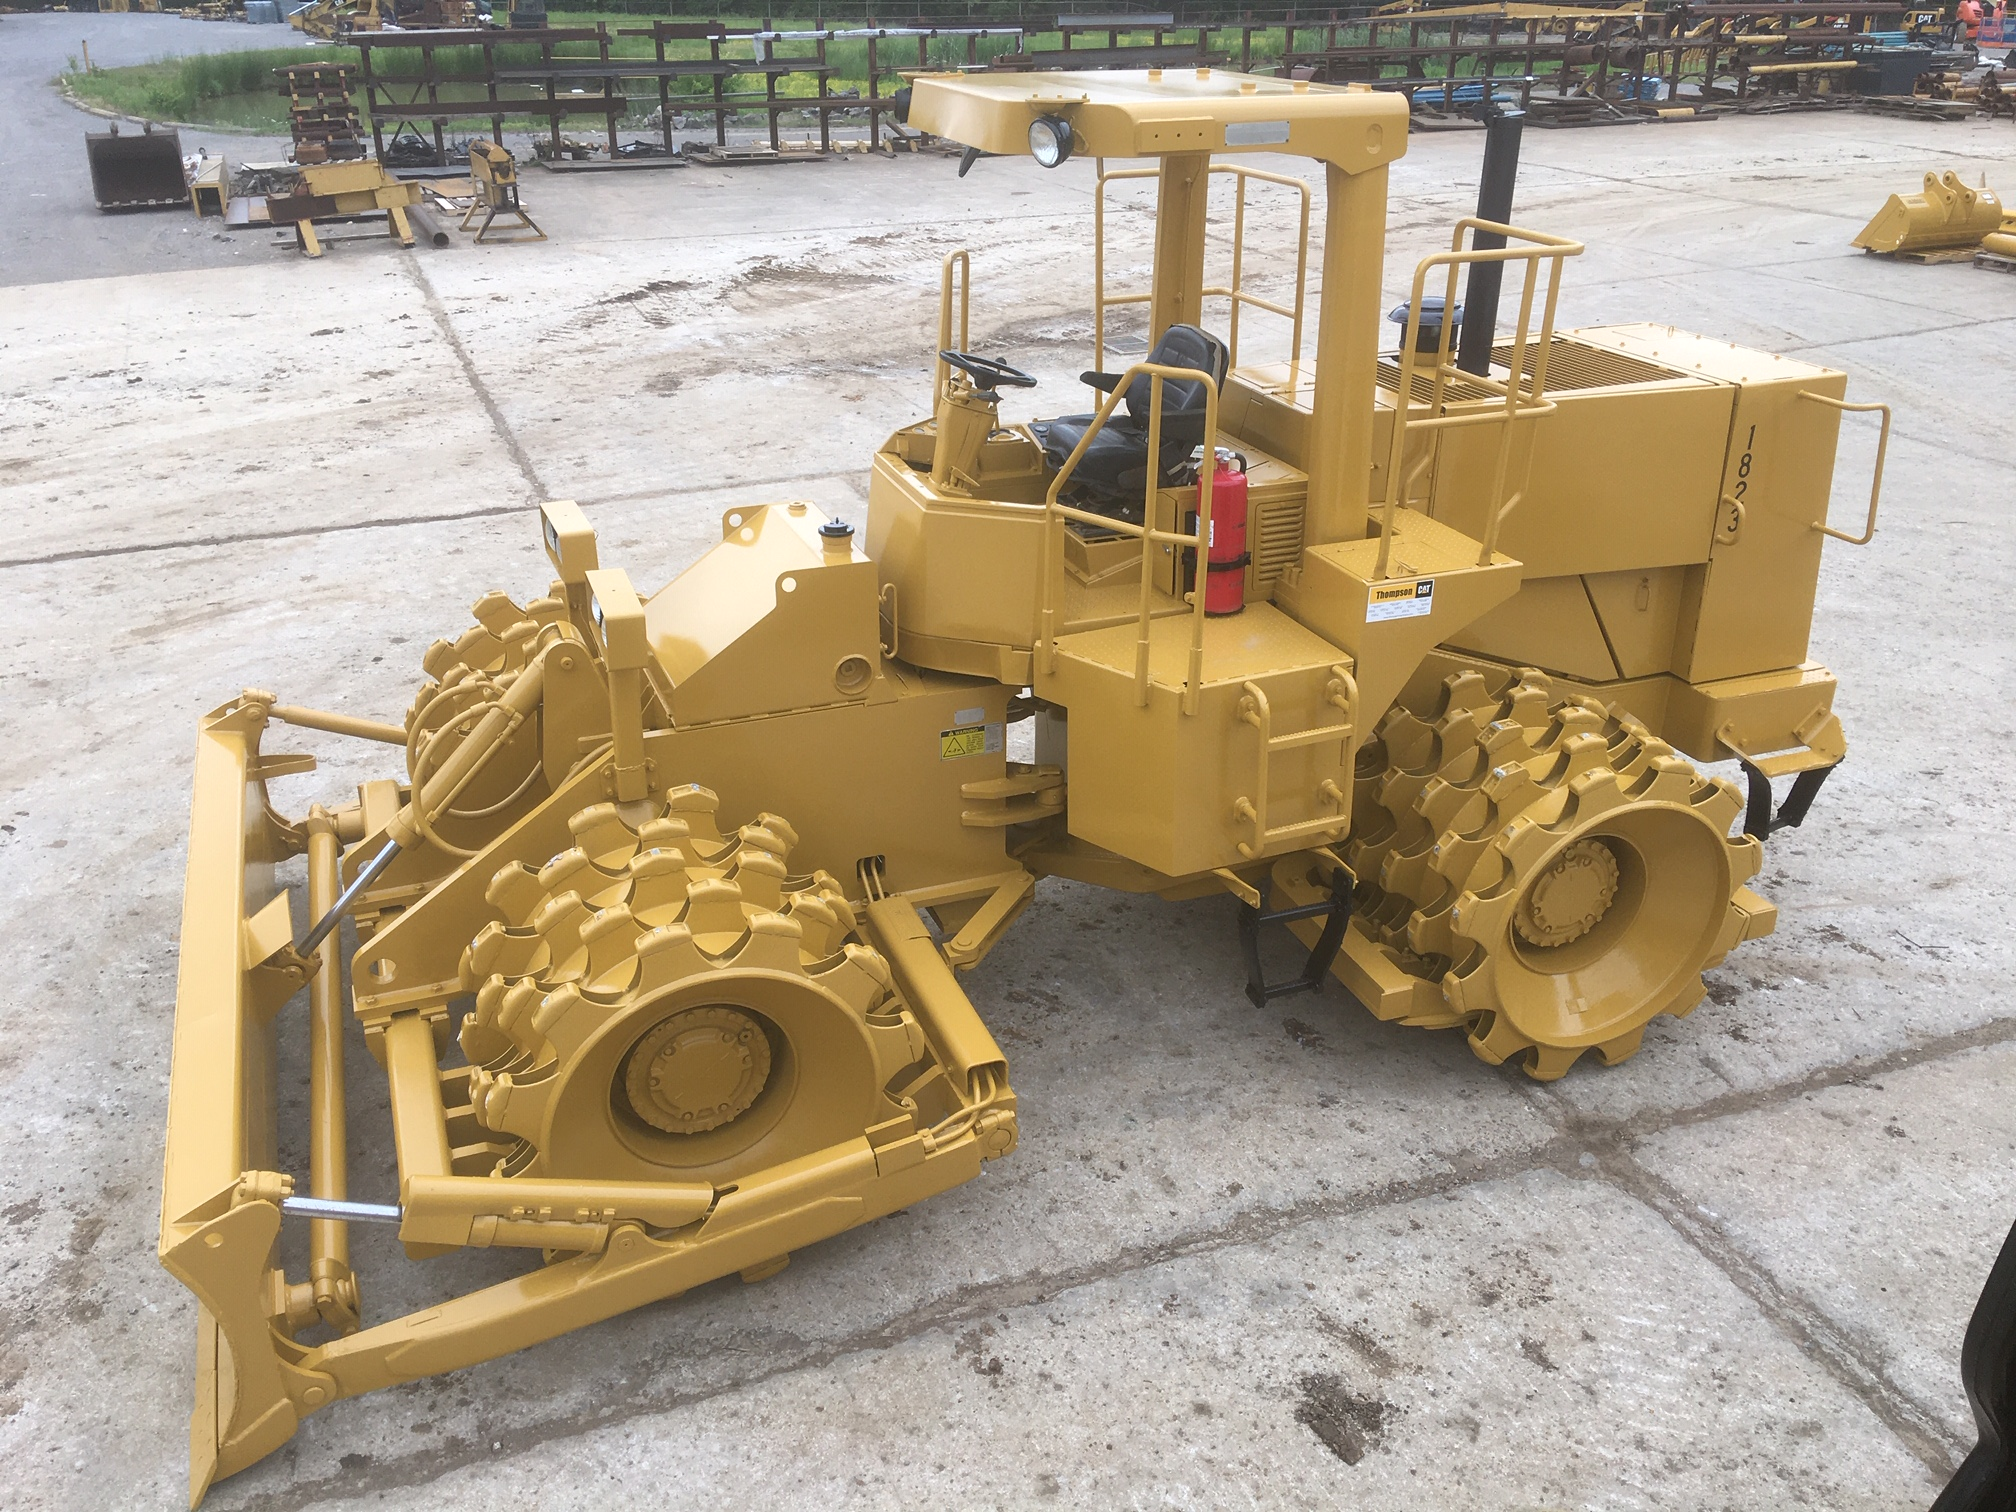 Repainted Caterpillar Equipment